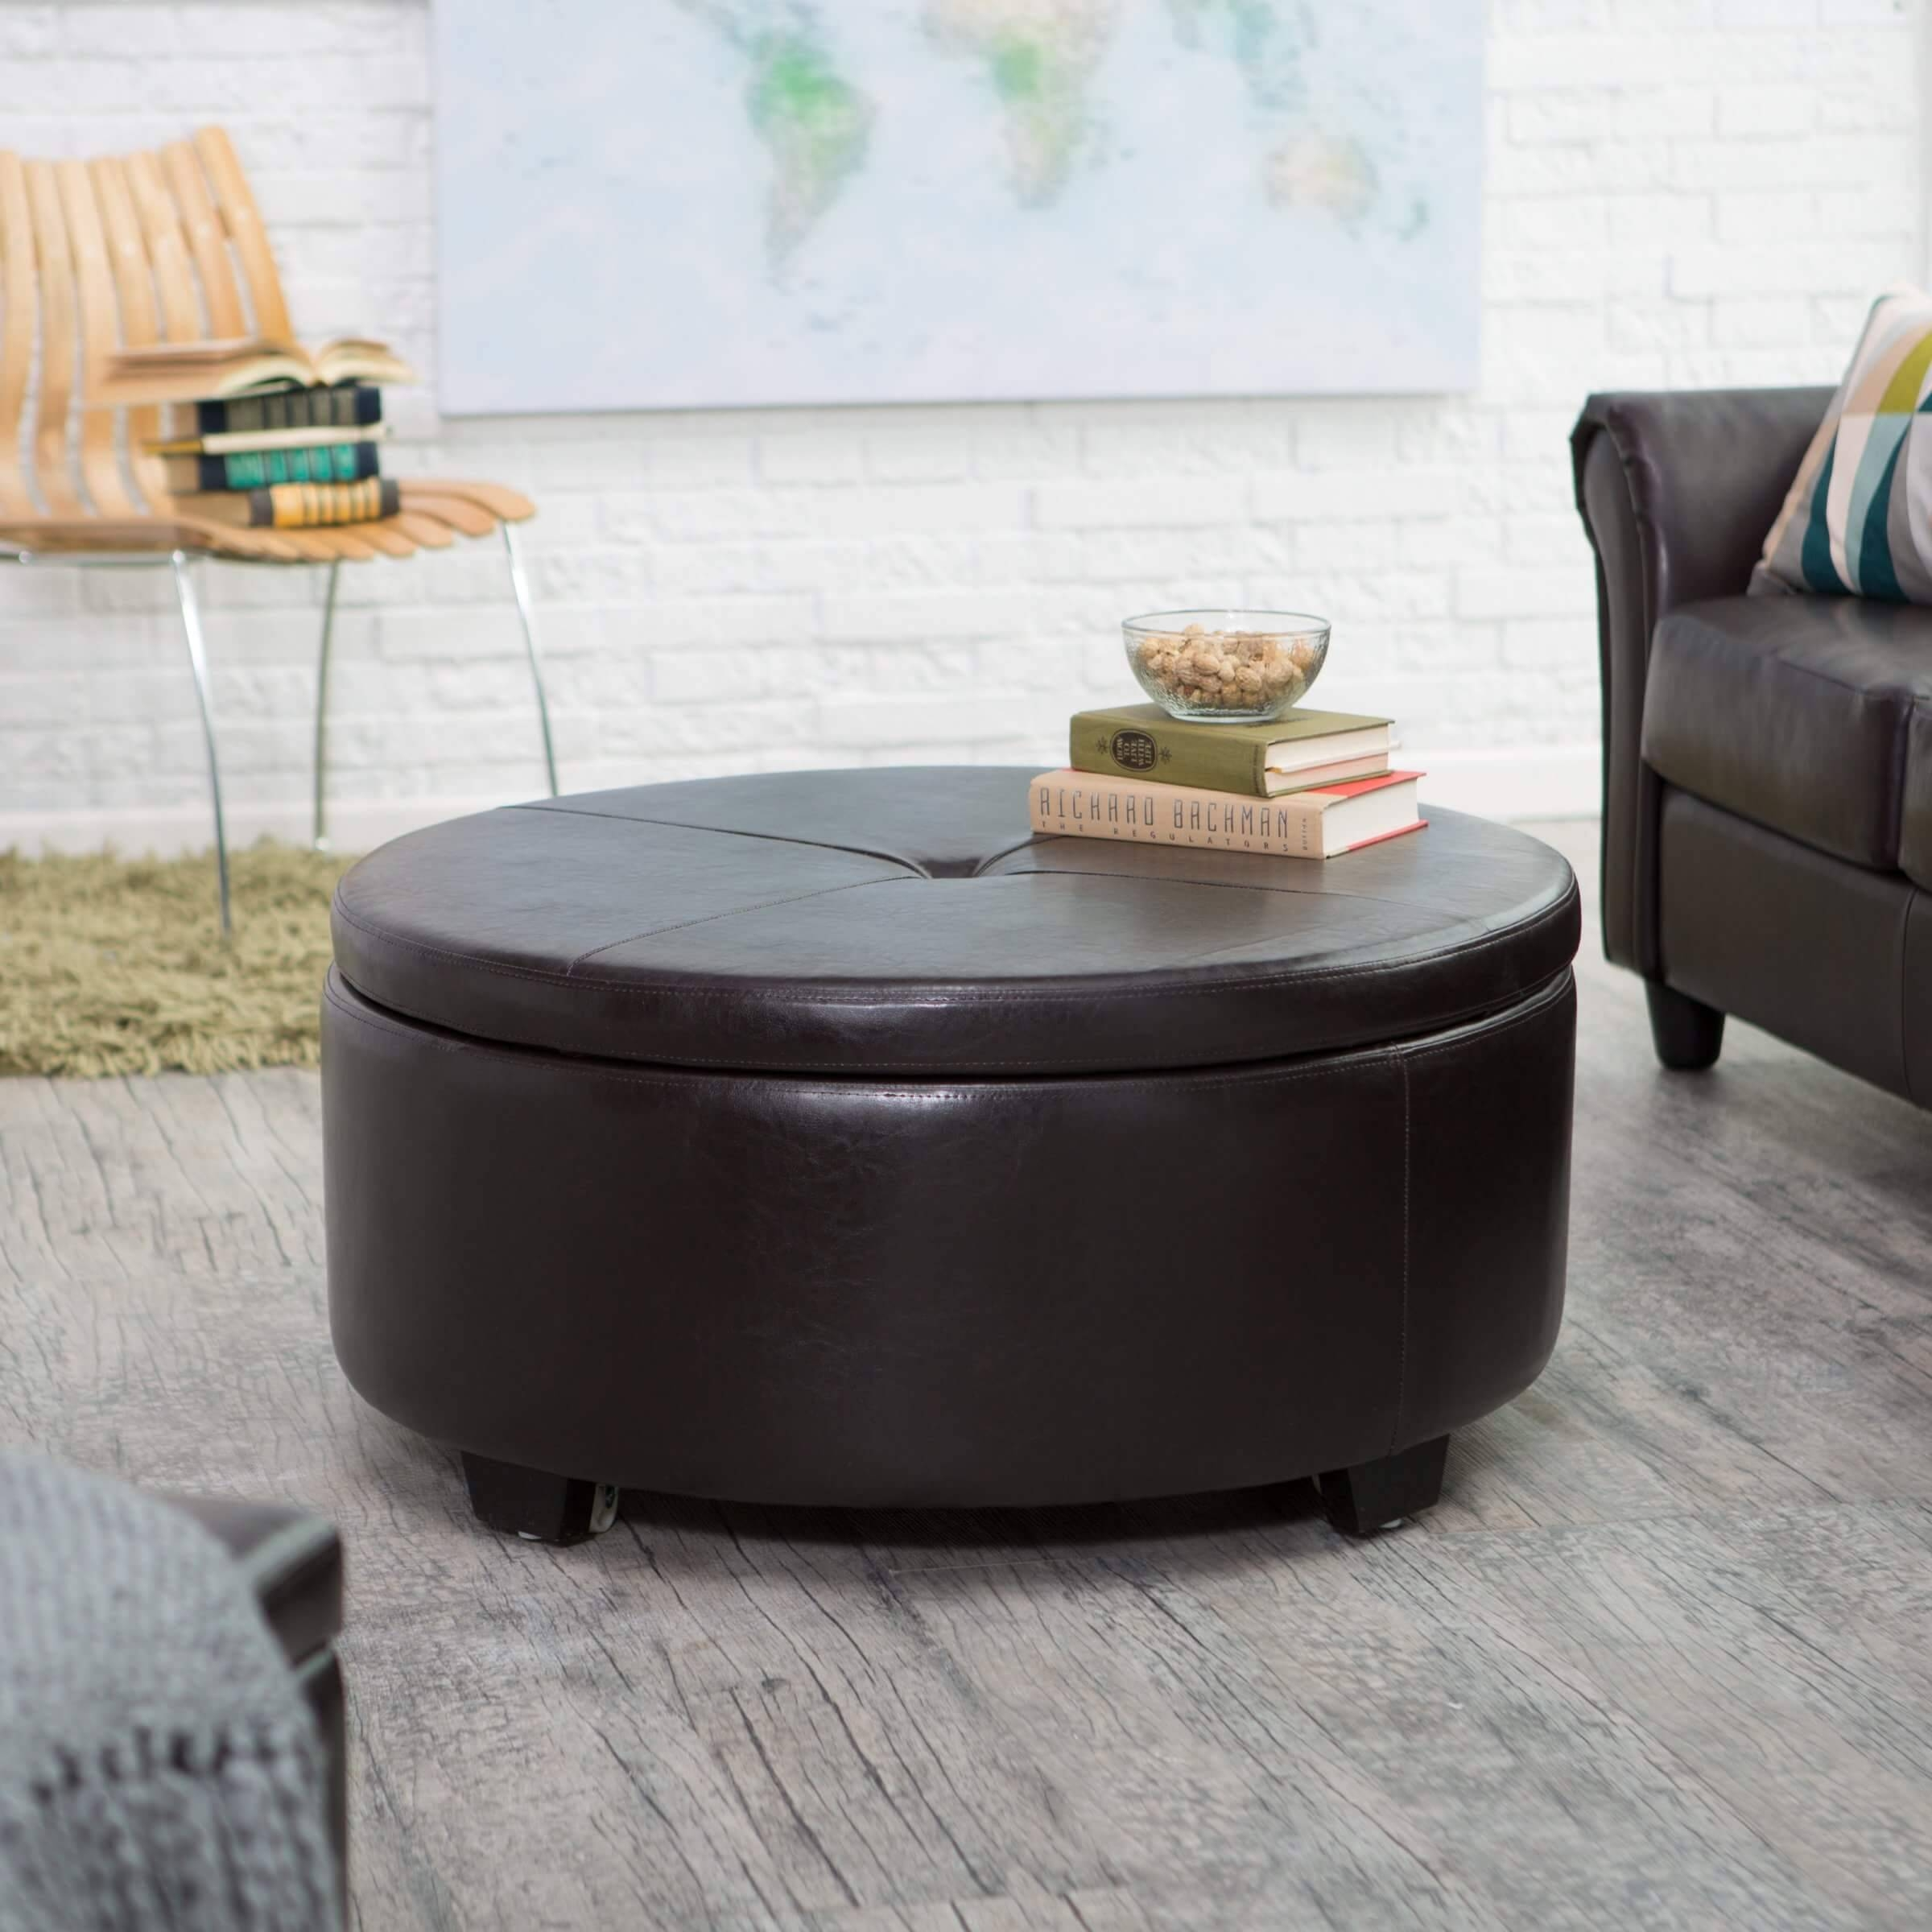 36 Top Brown Leather Ottoman Coffee Tables with regard to Coffee Tables With Storage (Image 1 of 30)